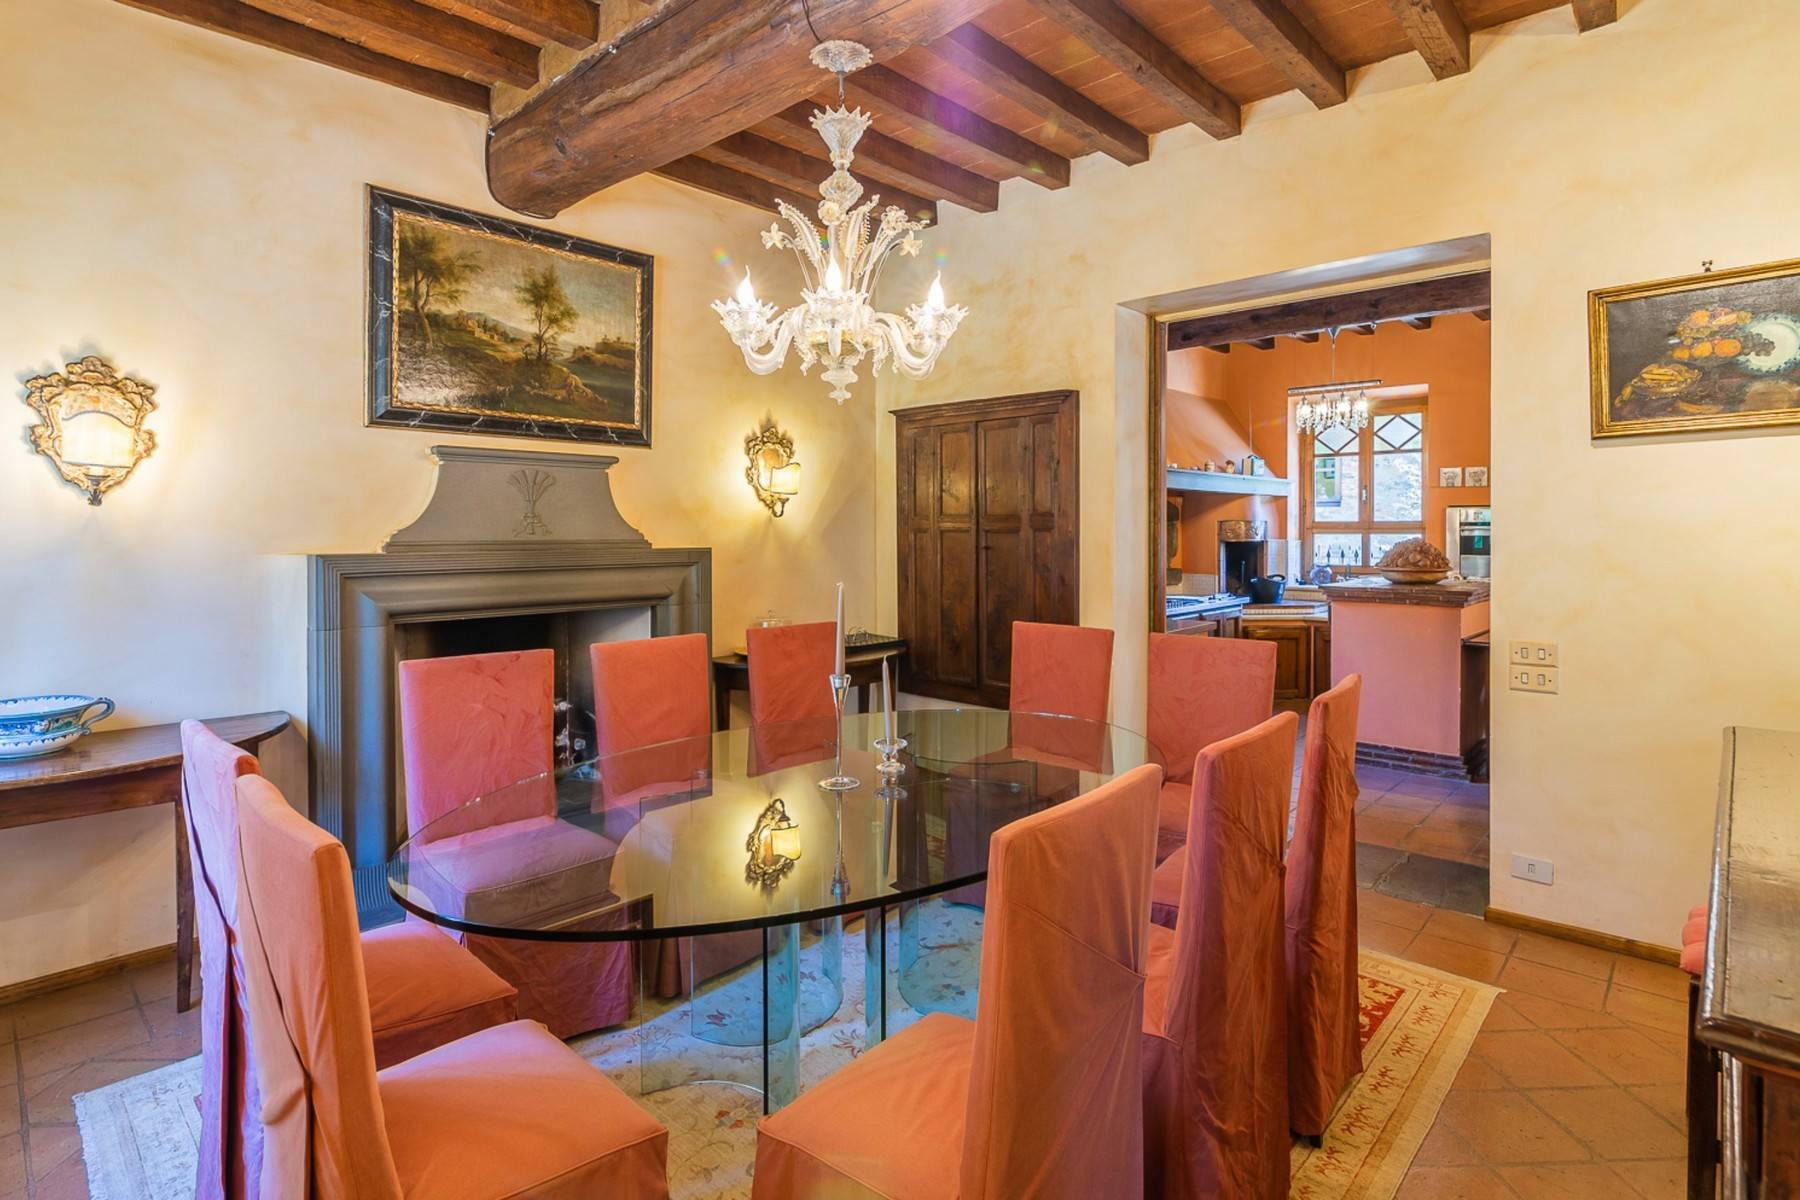 Majestic Luxury Villa with outbuildings on the hills south of Lucca - 8